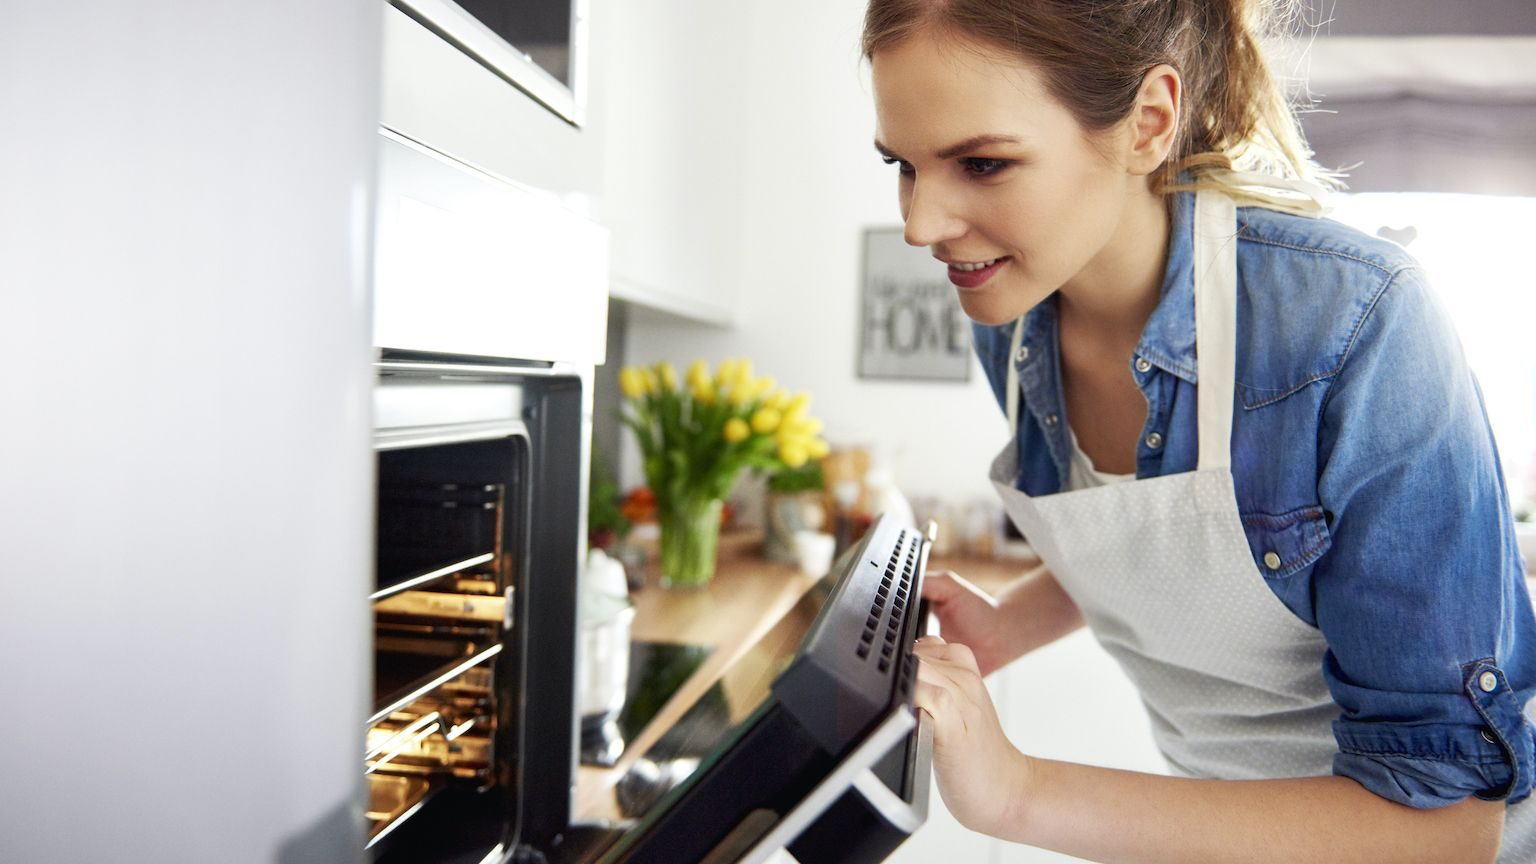 Young woman wearing a white apron peering into an oven